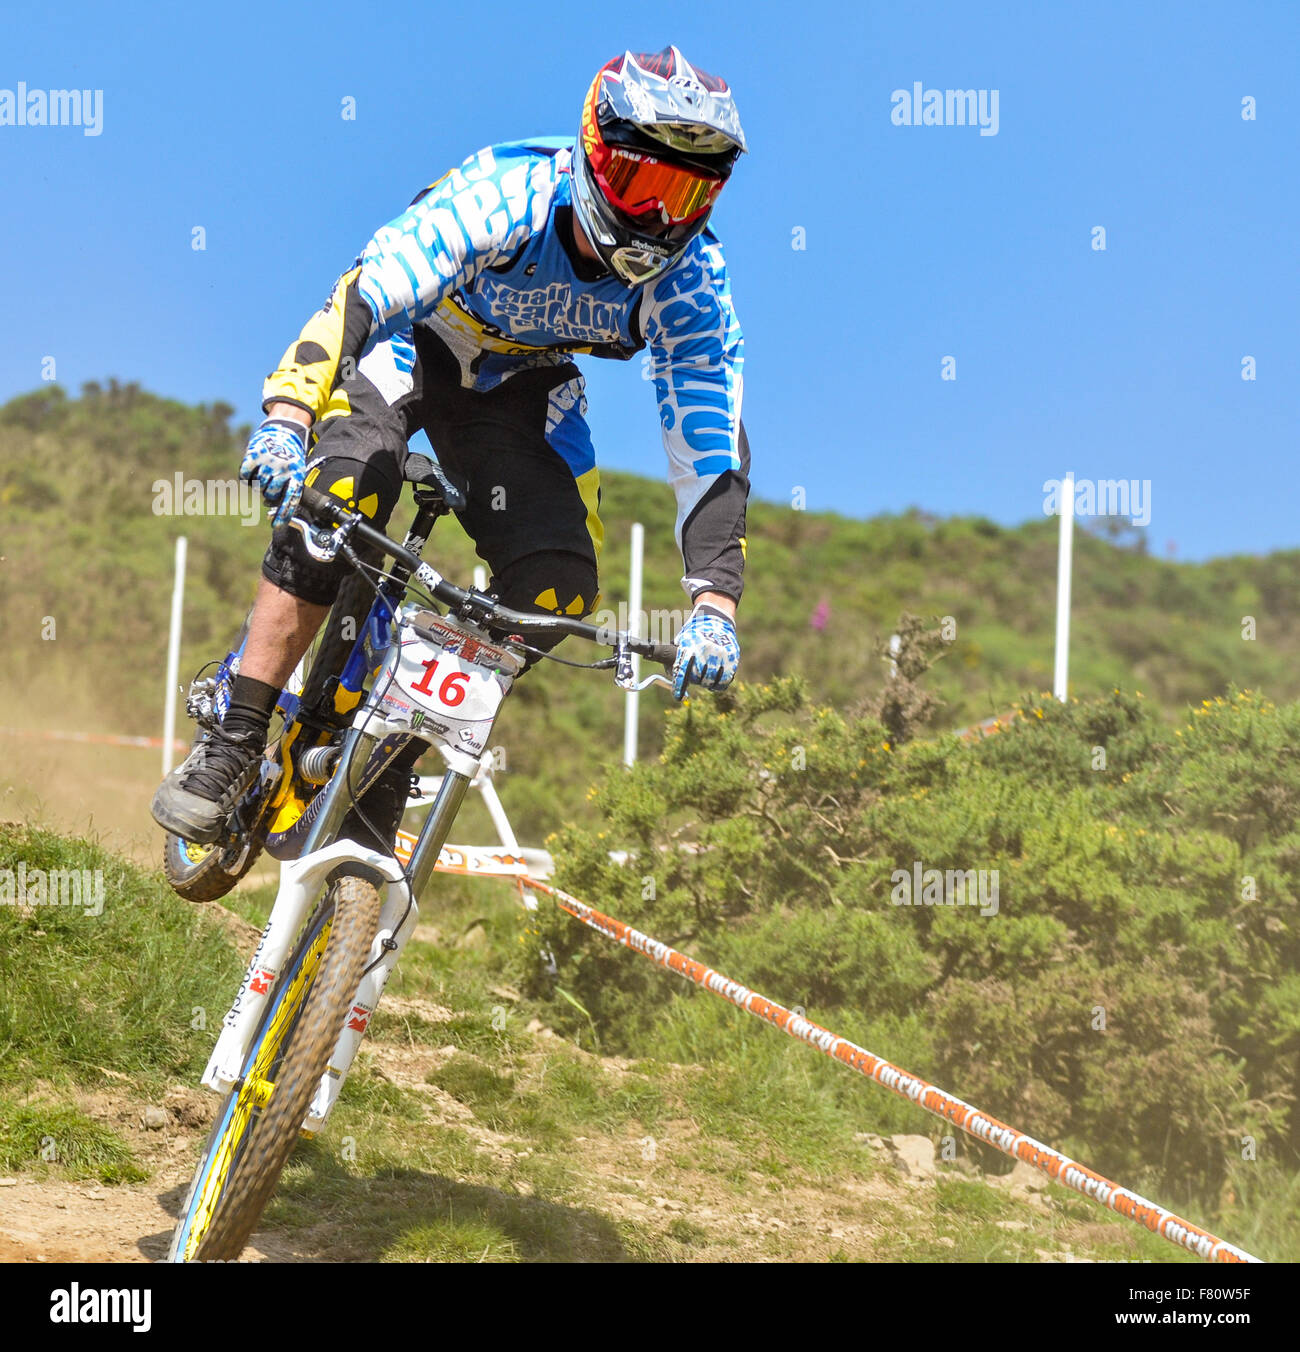 Extreme Sports Downhill Mountain Bike Race In The Uk Wales Great